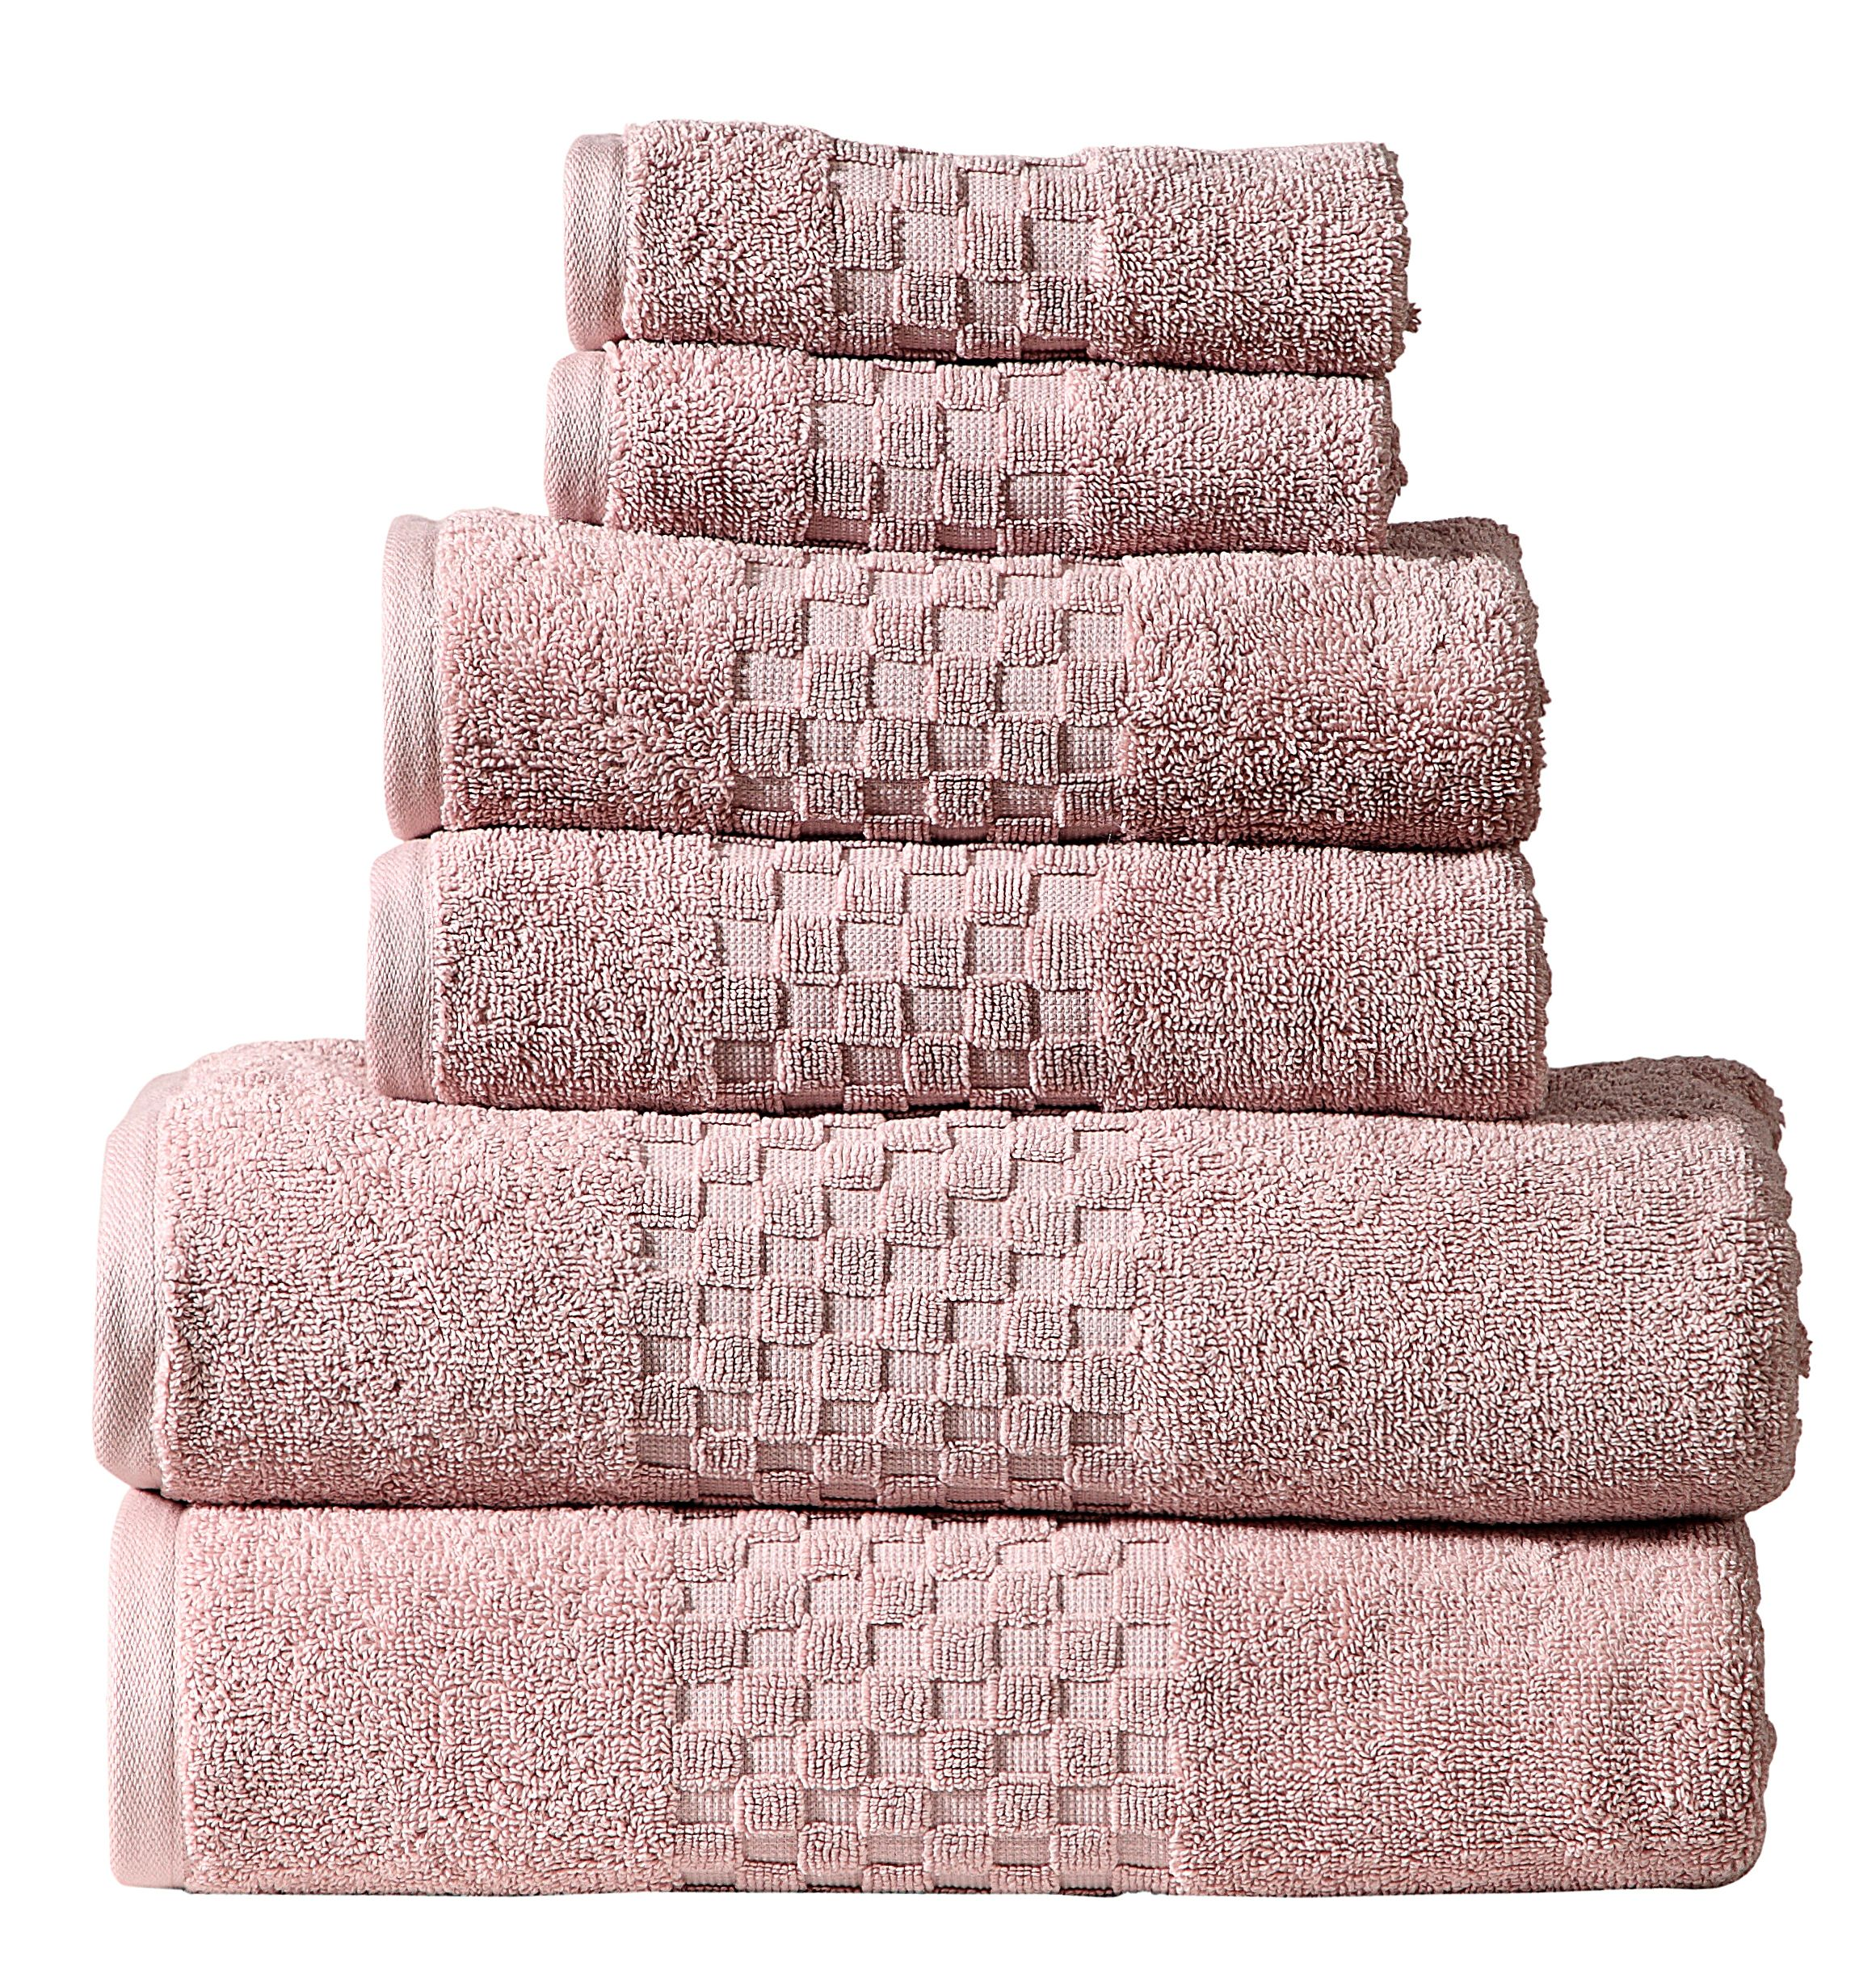 Luxury 100% Cotton 6-Piece Towel Set, 650 GSM Hotel Collection, Super Soft and Highly Absorbent (Multicolor, 6 Pack Set)